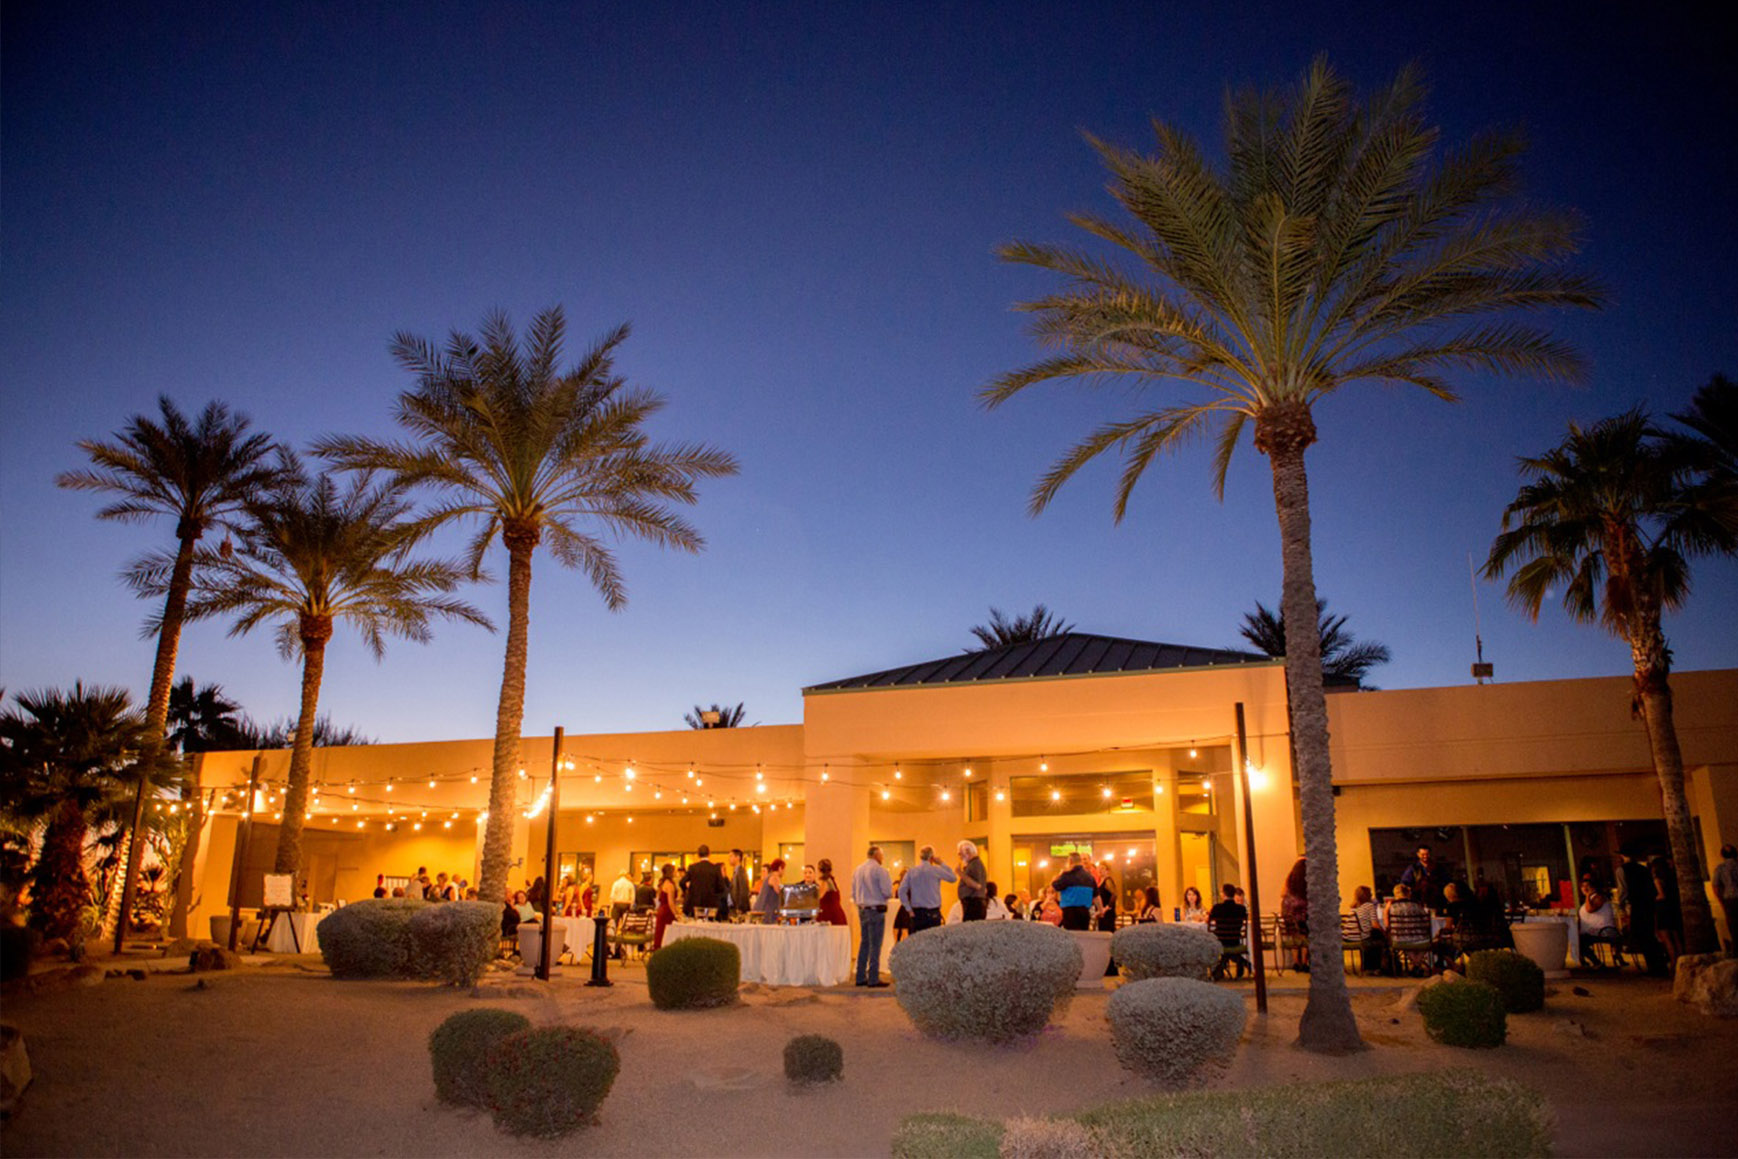 Building exterior with bistro lights - Palm Valley - Goodyear, Arizona - Maricopa County - Wedgewood Weddings